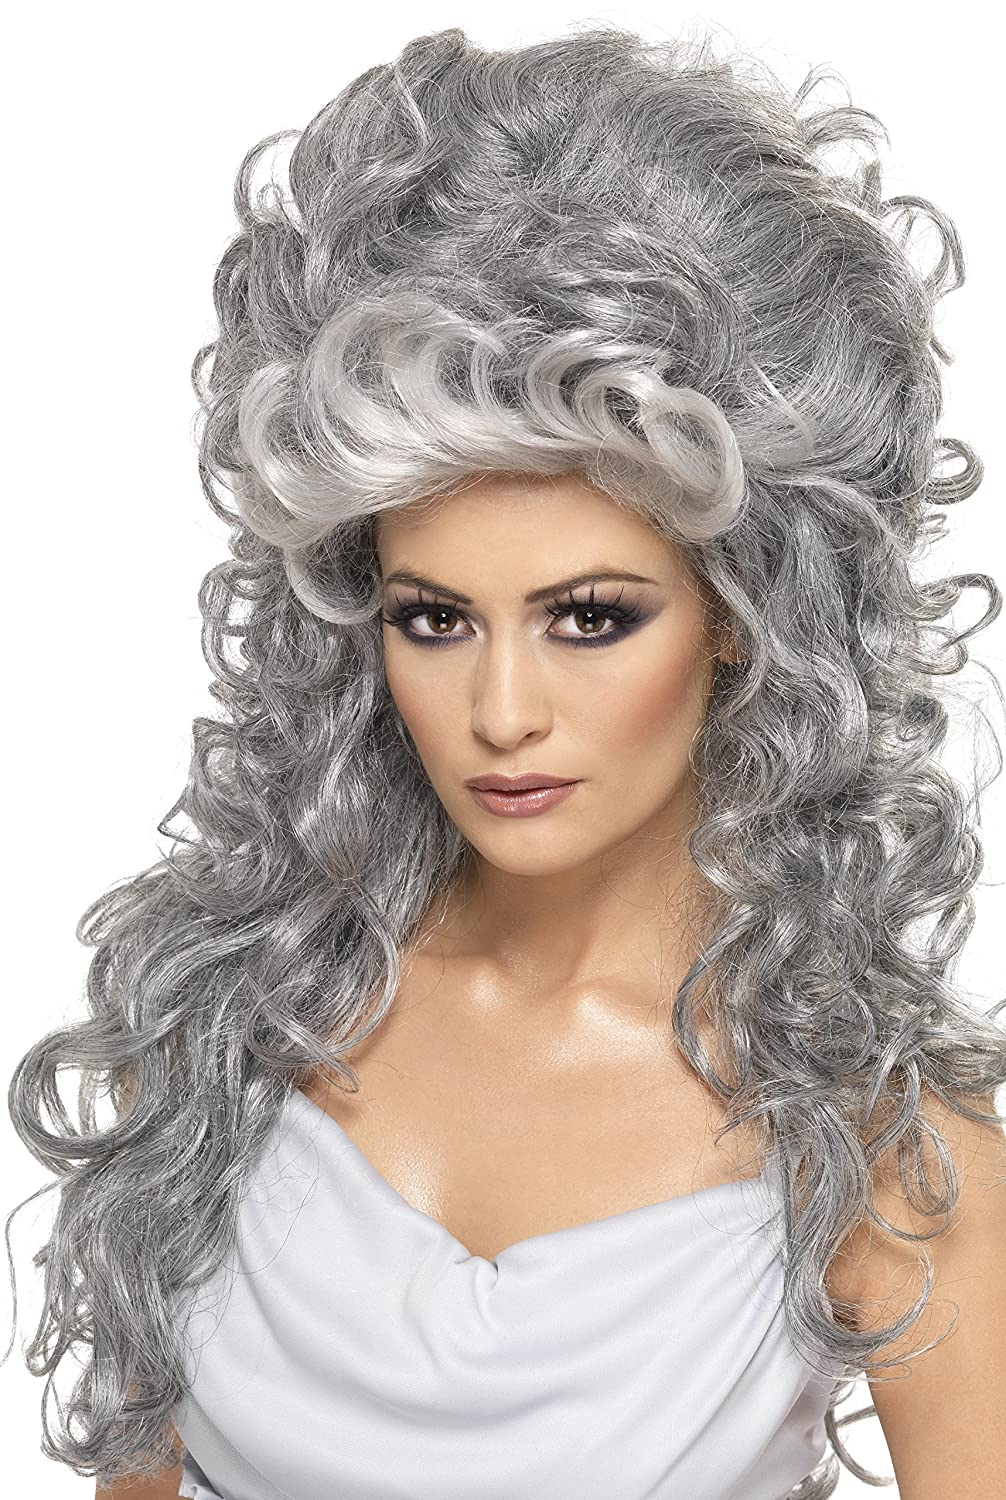 Smiffys Medeia Bee Hive Wig Costume, Grey, One Size RH Smith & Sons LTD 35684